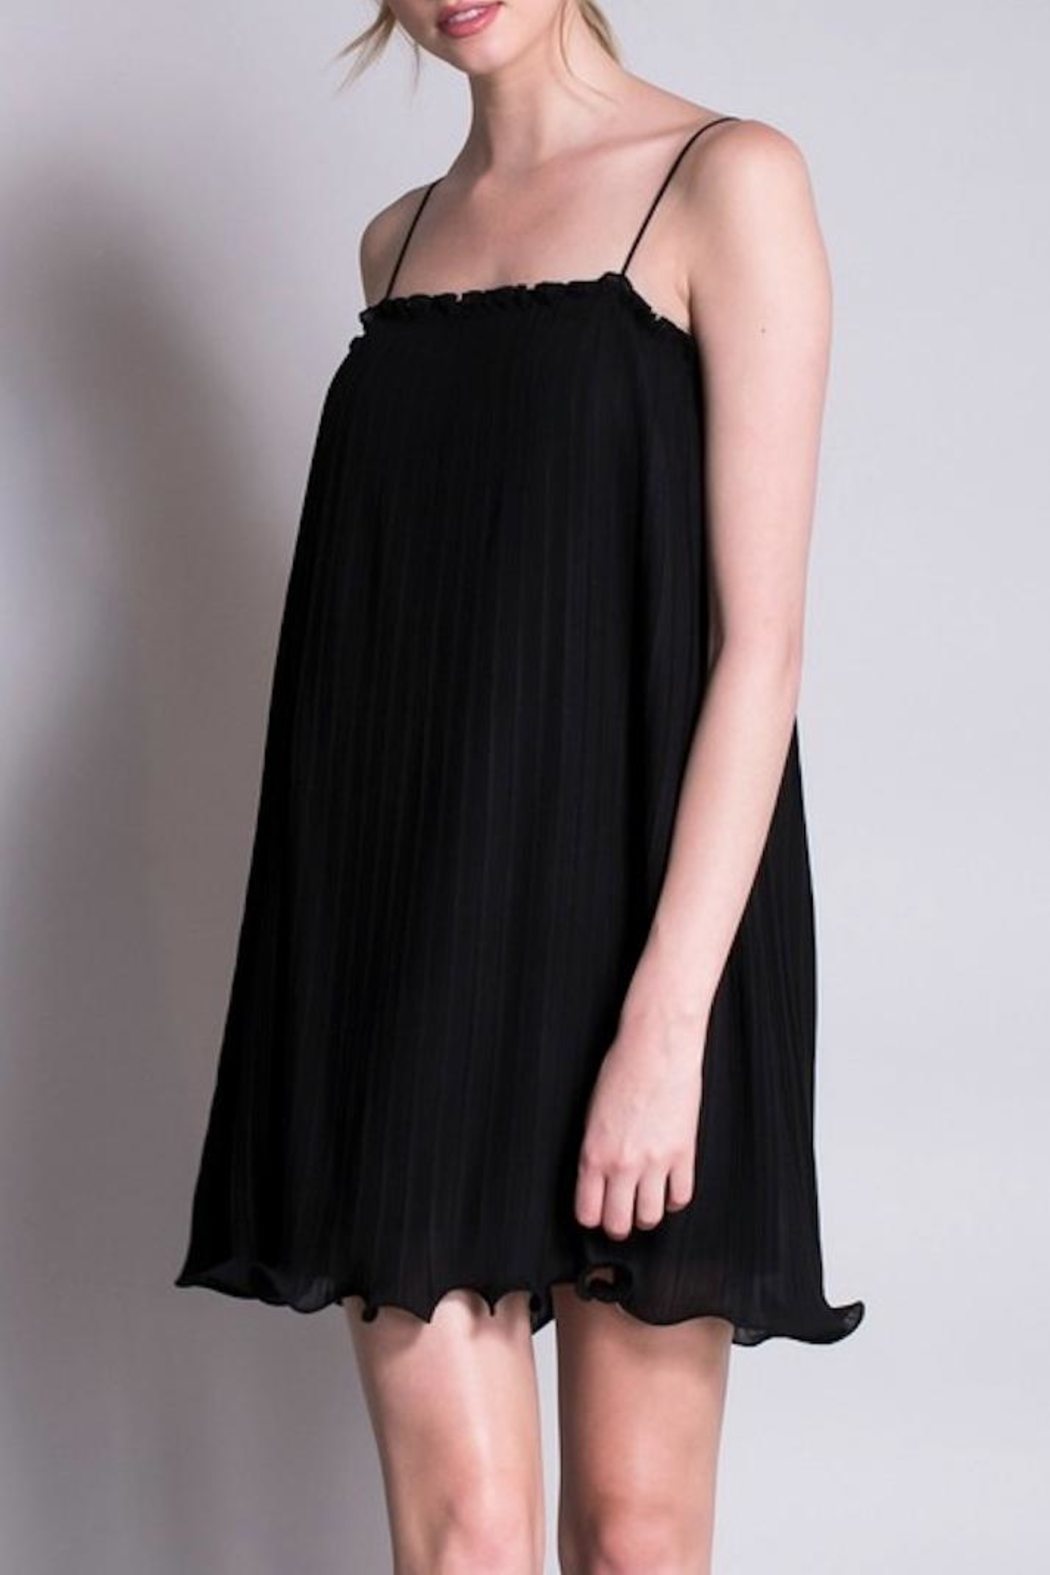 Yipsy Crinkle Black Dress - Main Image